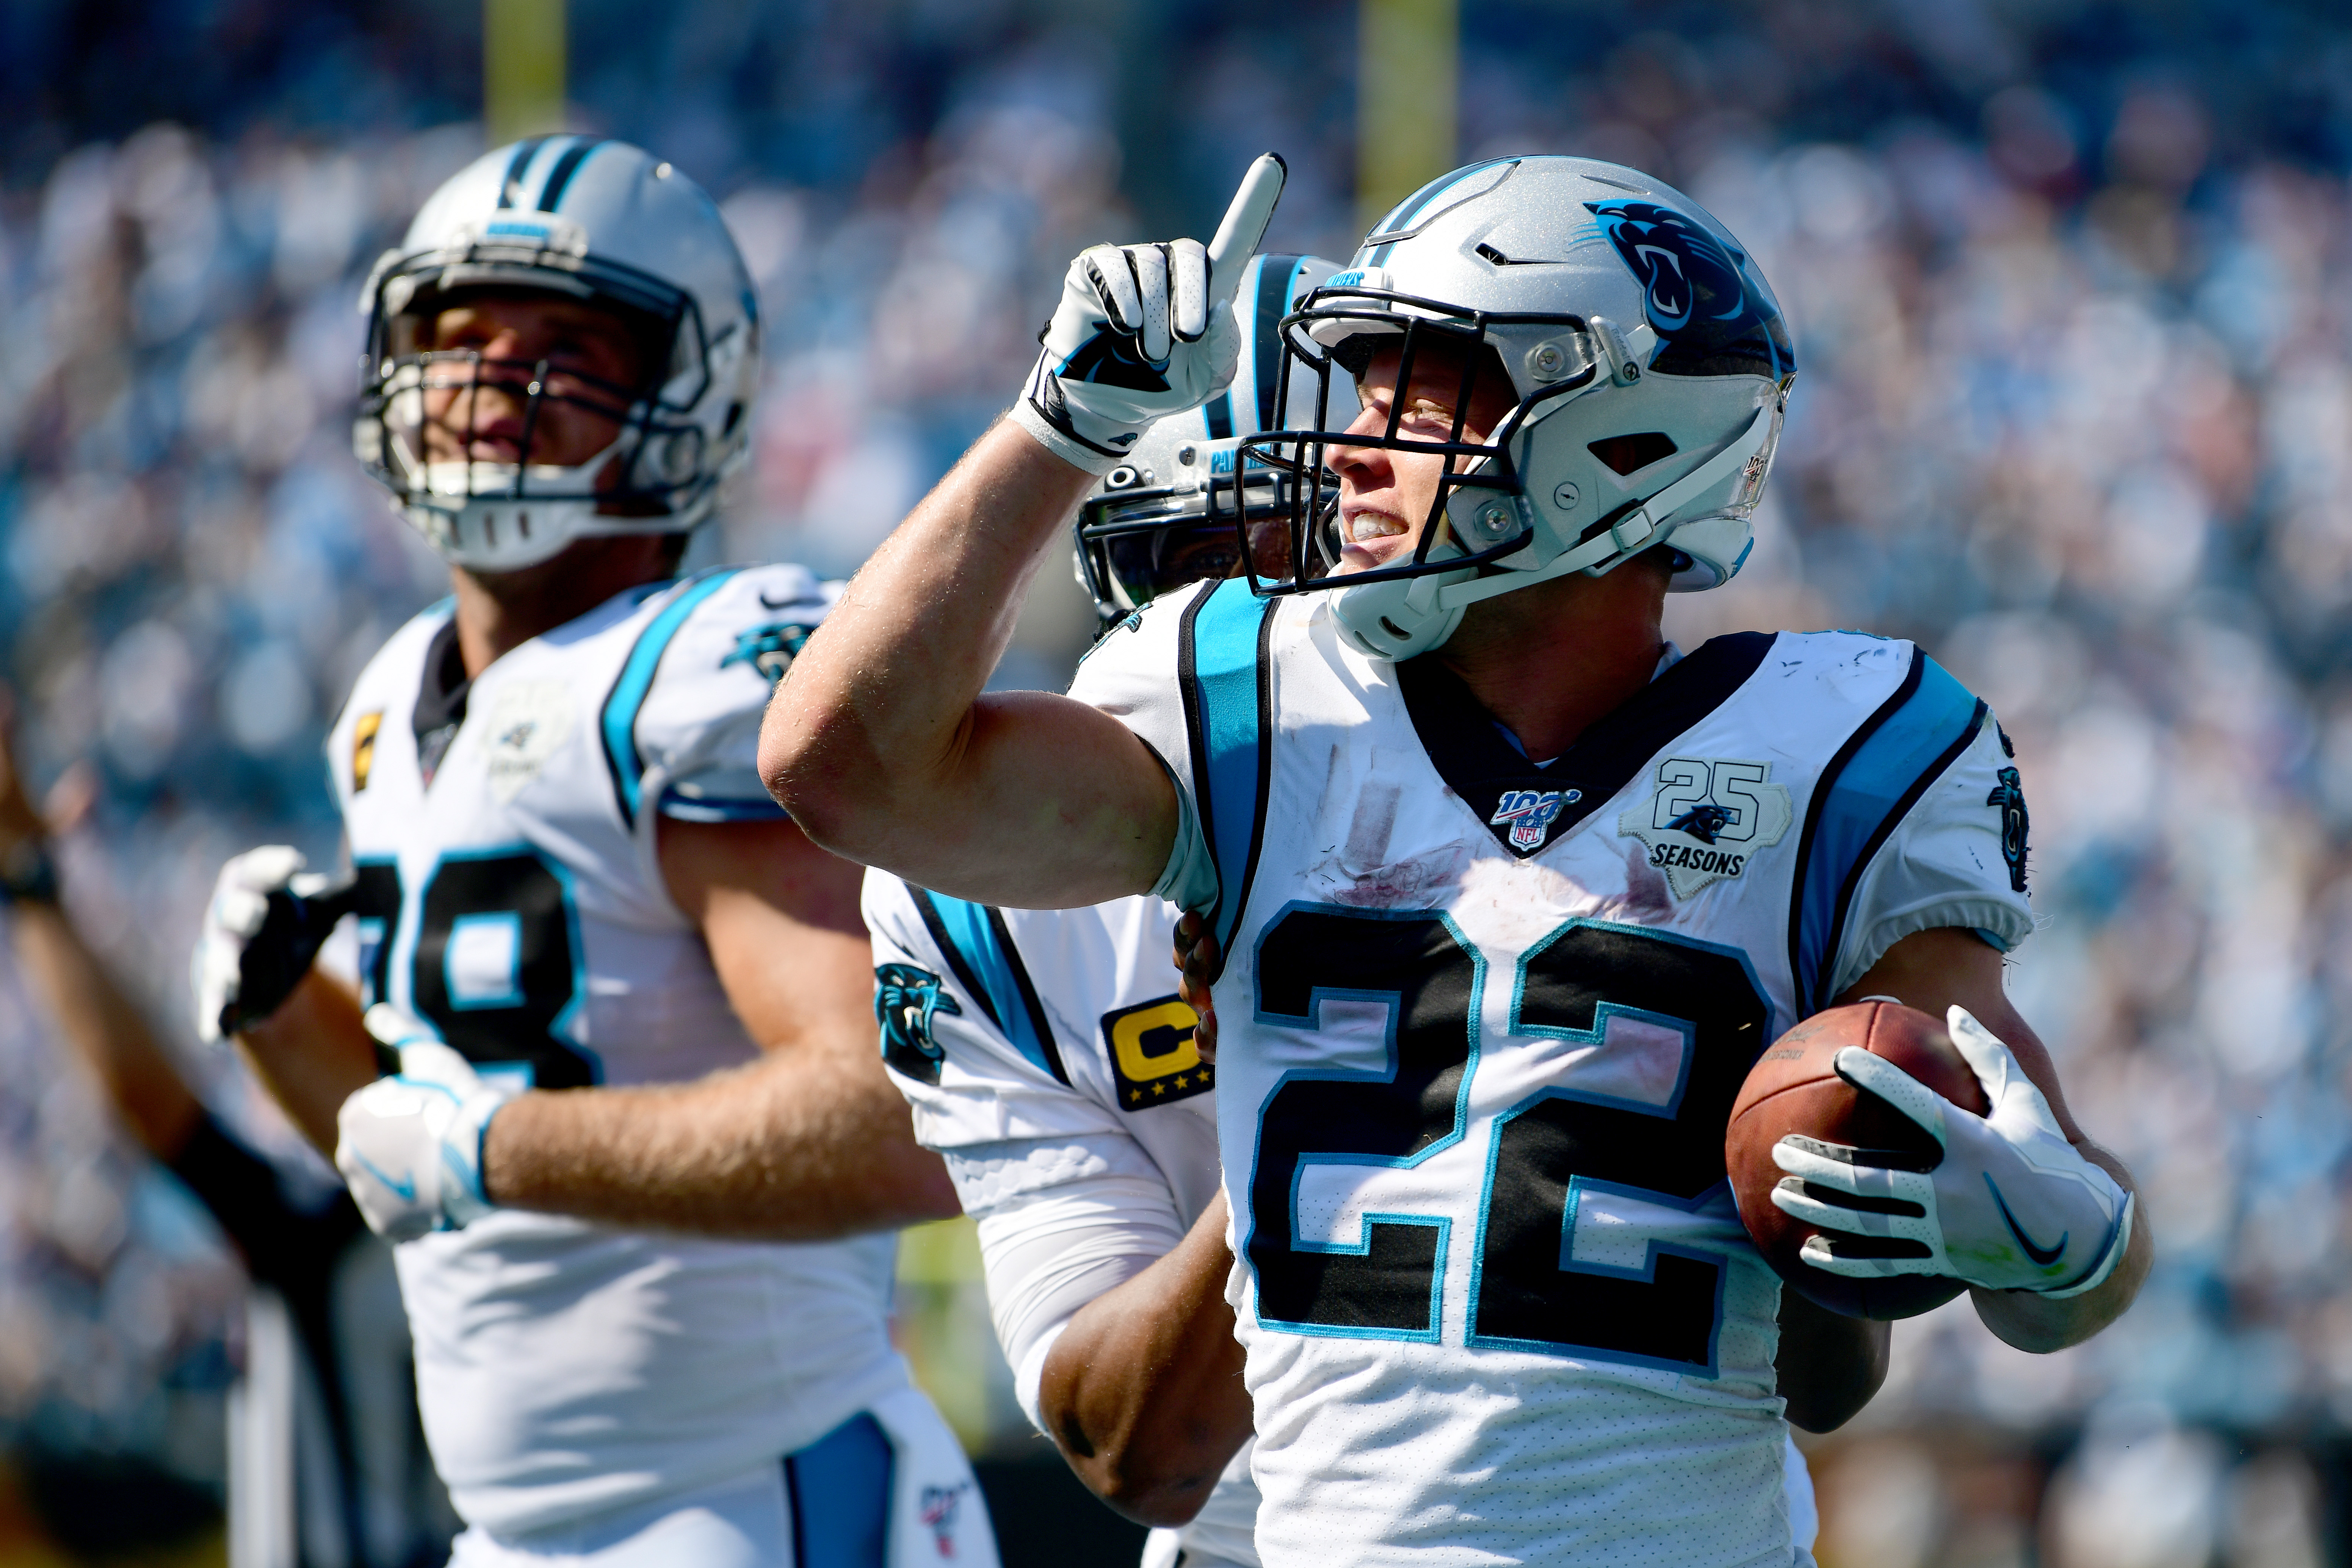 Christian McCaffrey #22 of the Carolina Panthers celebrates after a touchdown in the fourth quarter during their game against the Los Angeles Rams at Bank of America Stadium on September 08, 2019 in Charlotte, North Carolina.